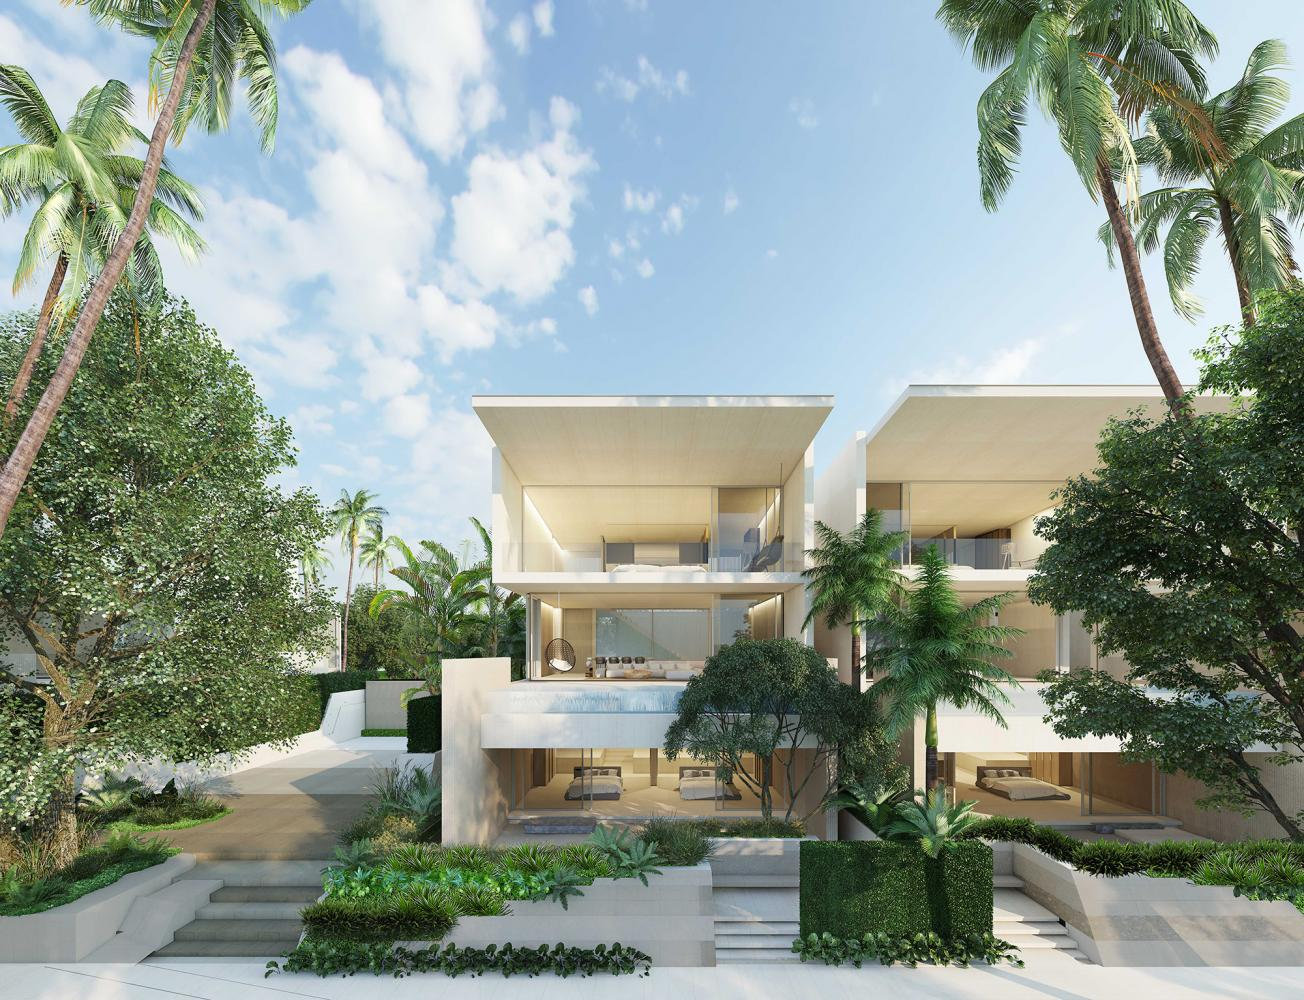 An artist's rendition of some of the beachfront villas at Veyla Natai Residences in Phangnga, priced at 67-89 million baht a unit.